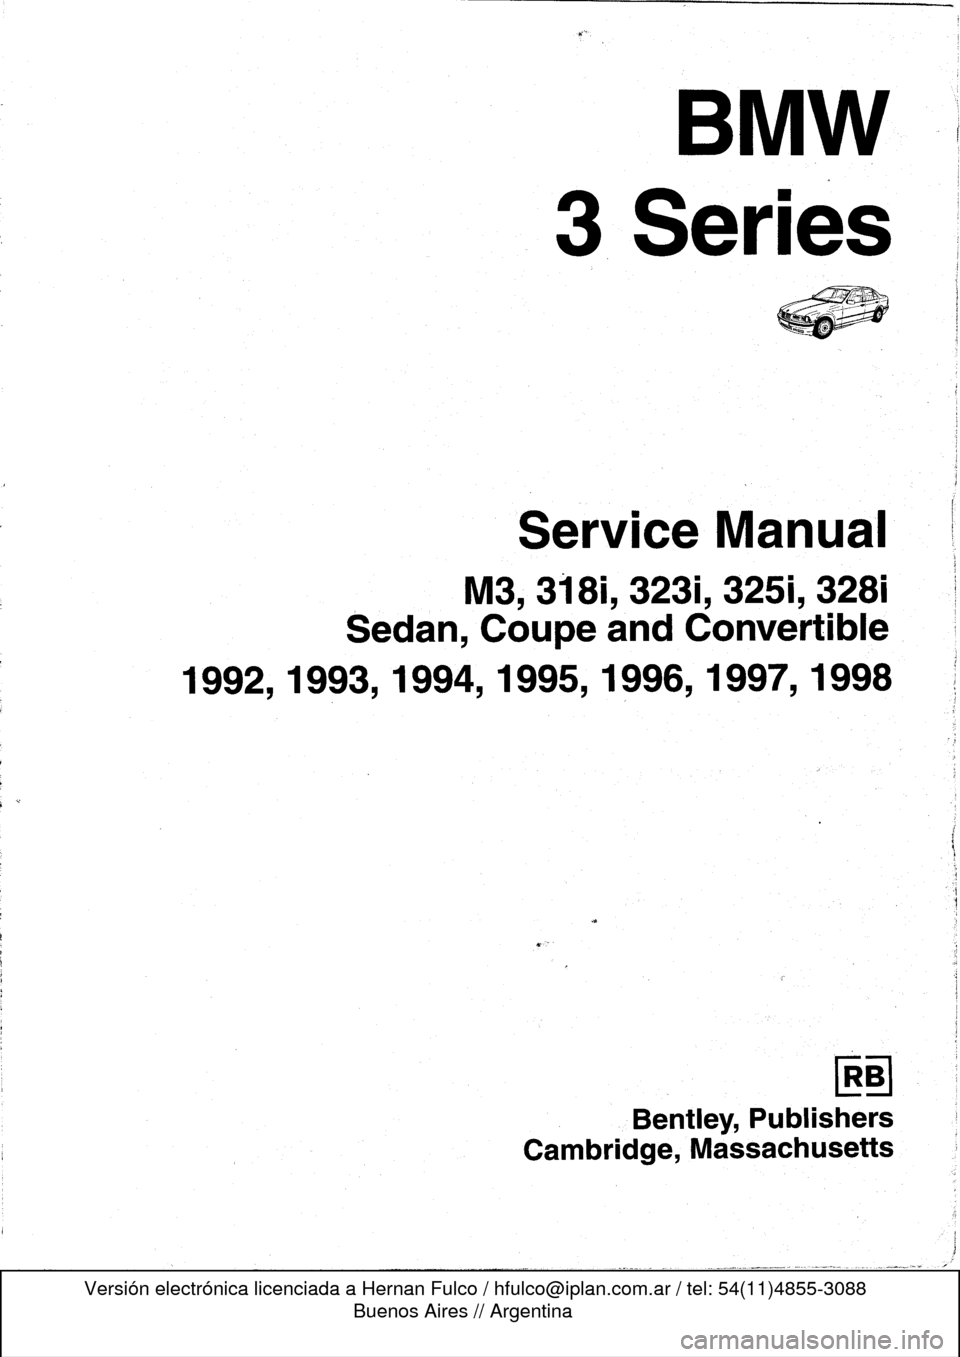 Bmw M3 1994 E36 Workshop Manual Bmw Bmw M3 Manual Car